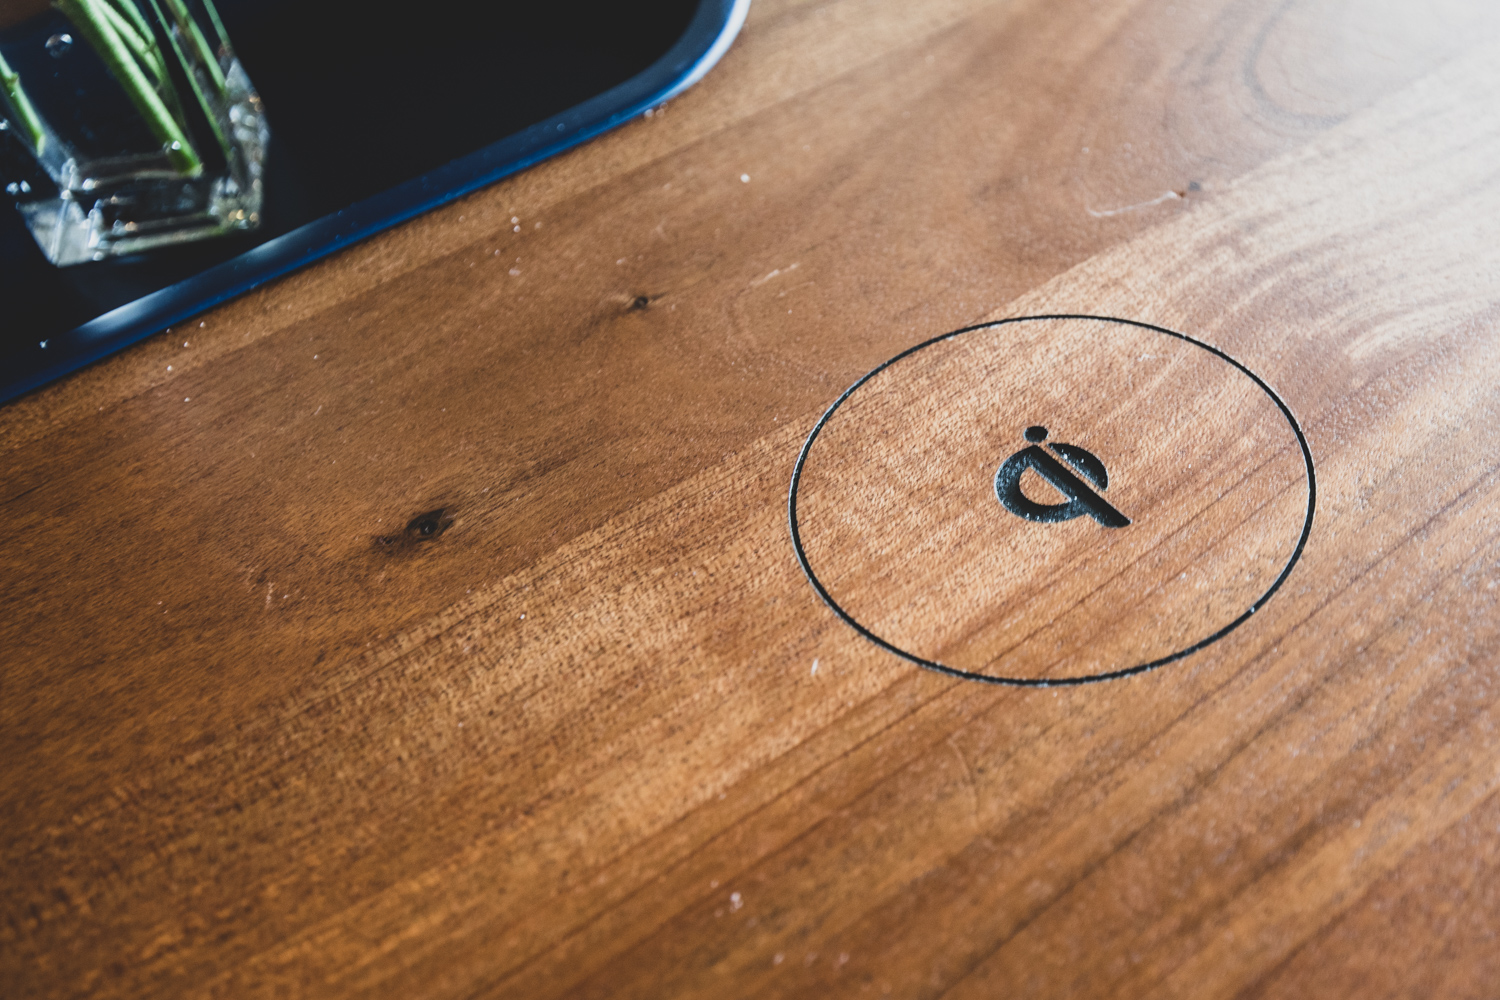 Something easy to overlook: the circular branding of Cold Brew Bar found on the tables is actually a hidden wireless charger for your phones (if they are capable of such functionality). I had no idea these were wireless chargers until the head of IT operations at Cold Brew Bar pointed out this amazing detail!